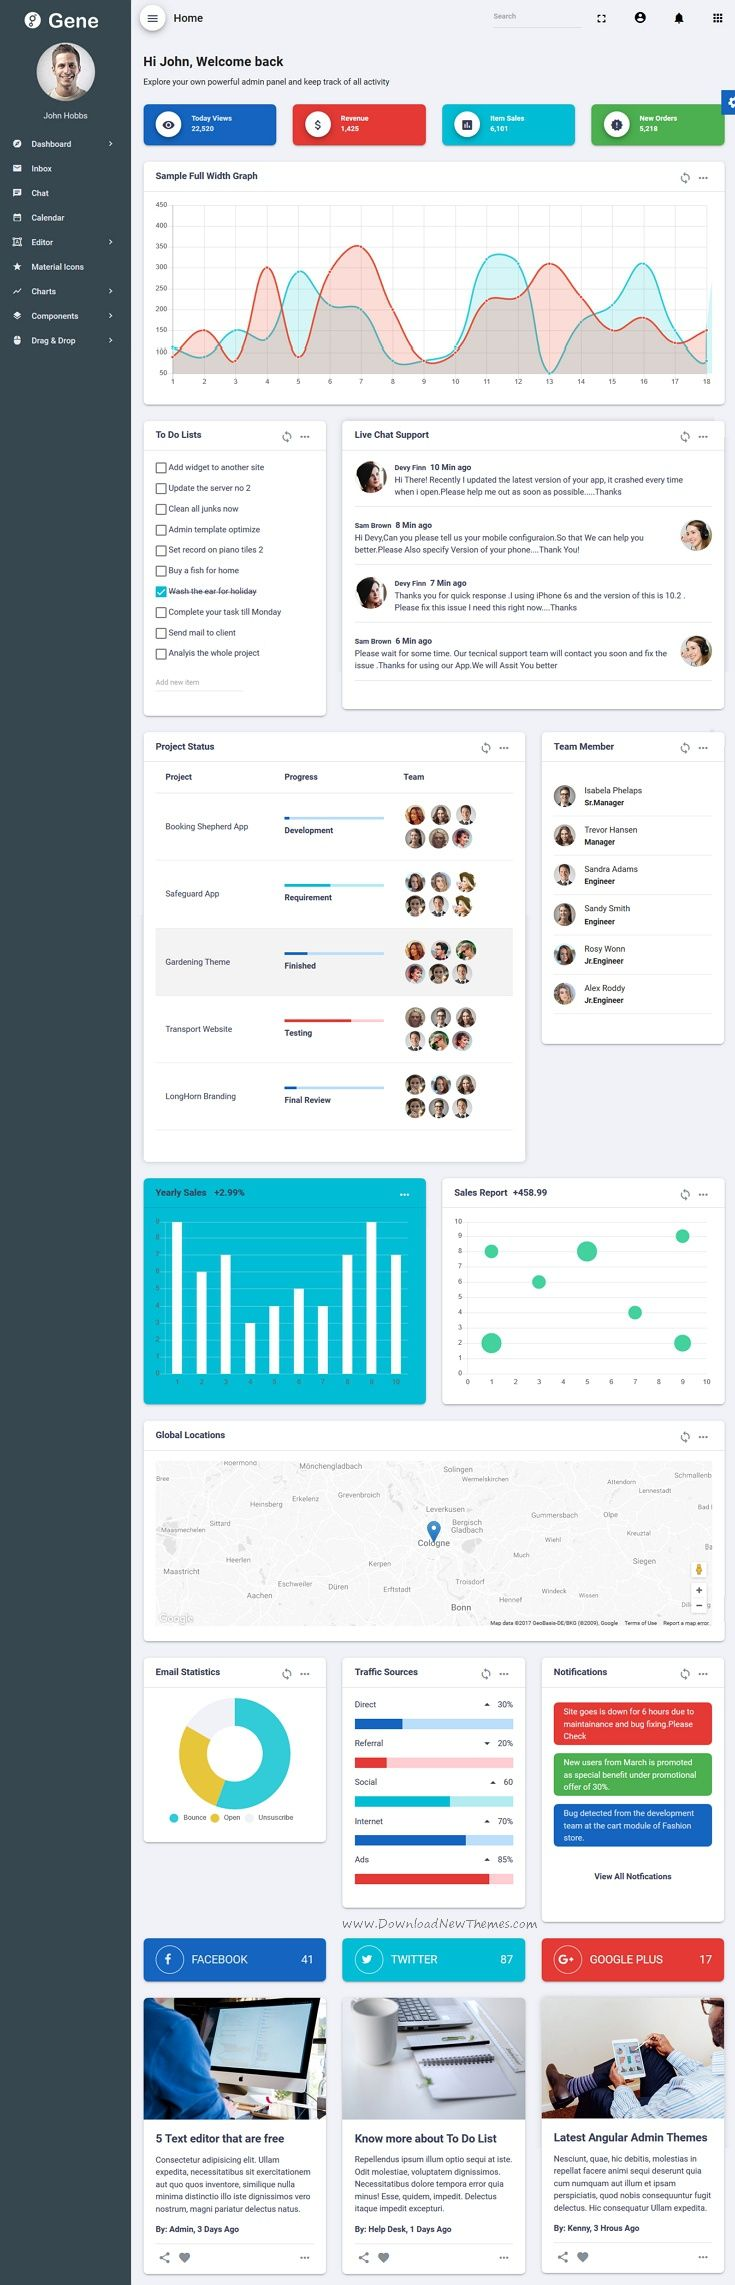 Gene is powerful #Angular Material design template for #admin #dashboard, #CMS, CRM and web applications backend projects download now➩ https://themeforest.net/item/gene-angular-2-material-design-admin-template/19877169?ref=Datasata